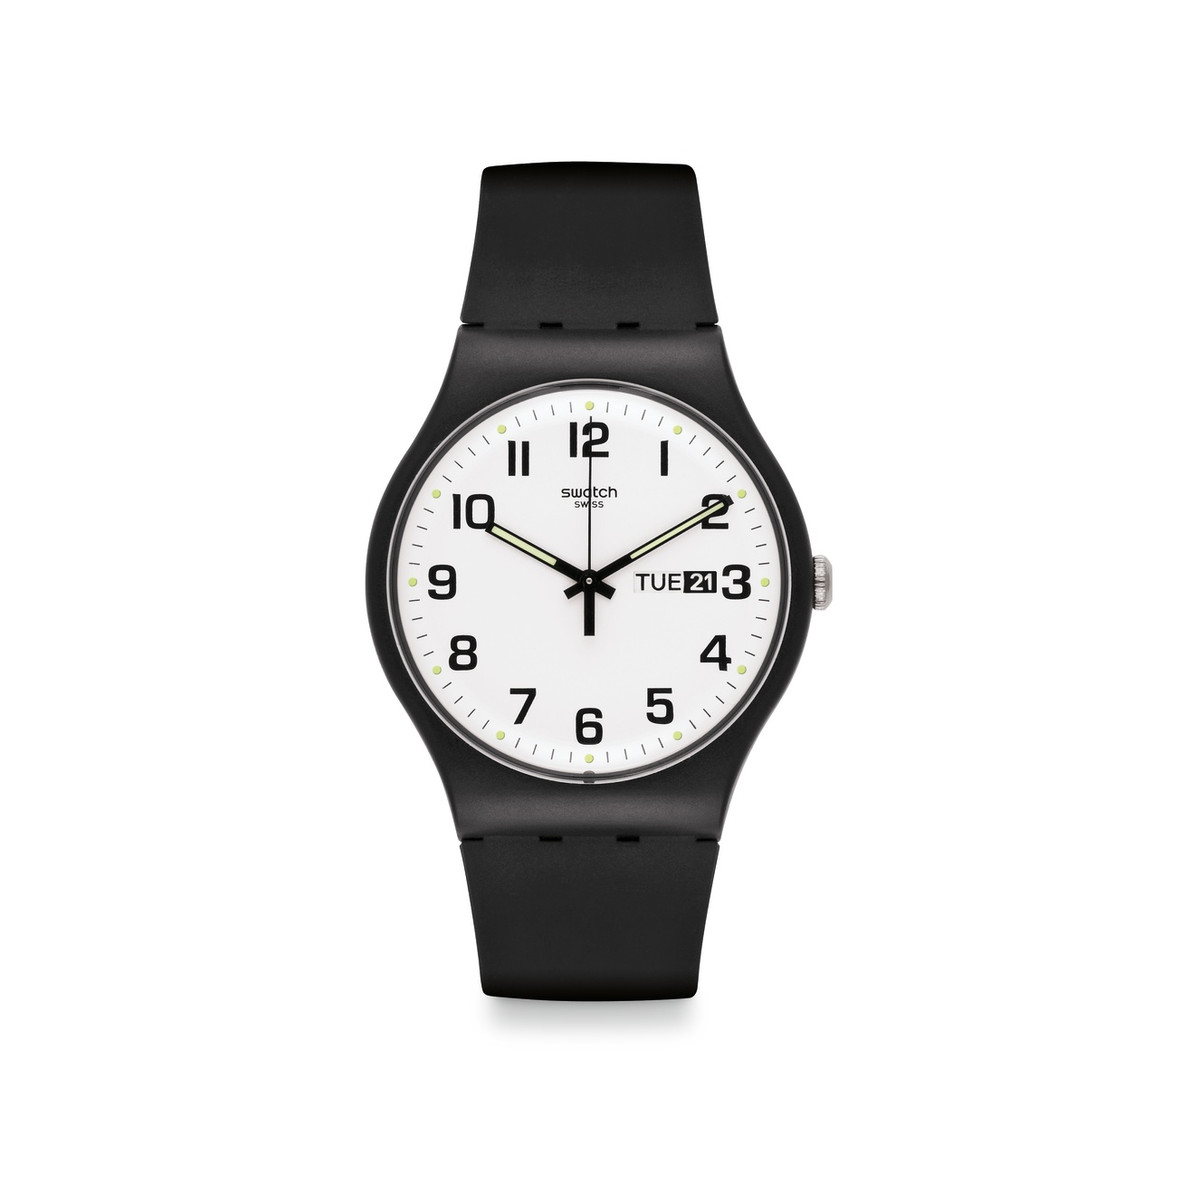 Montre Swatch mixte silicone noir